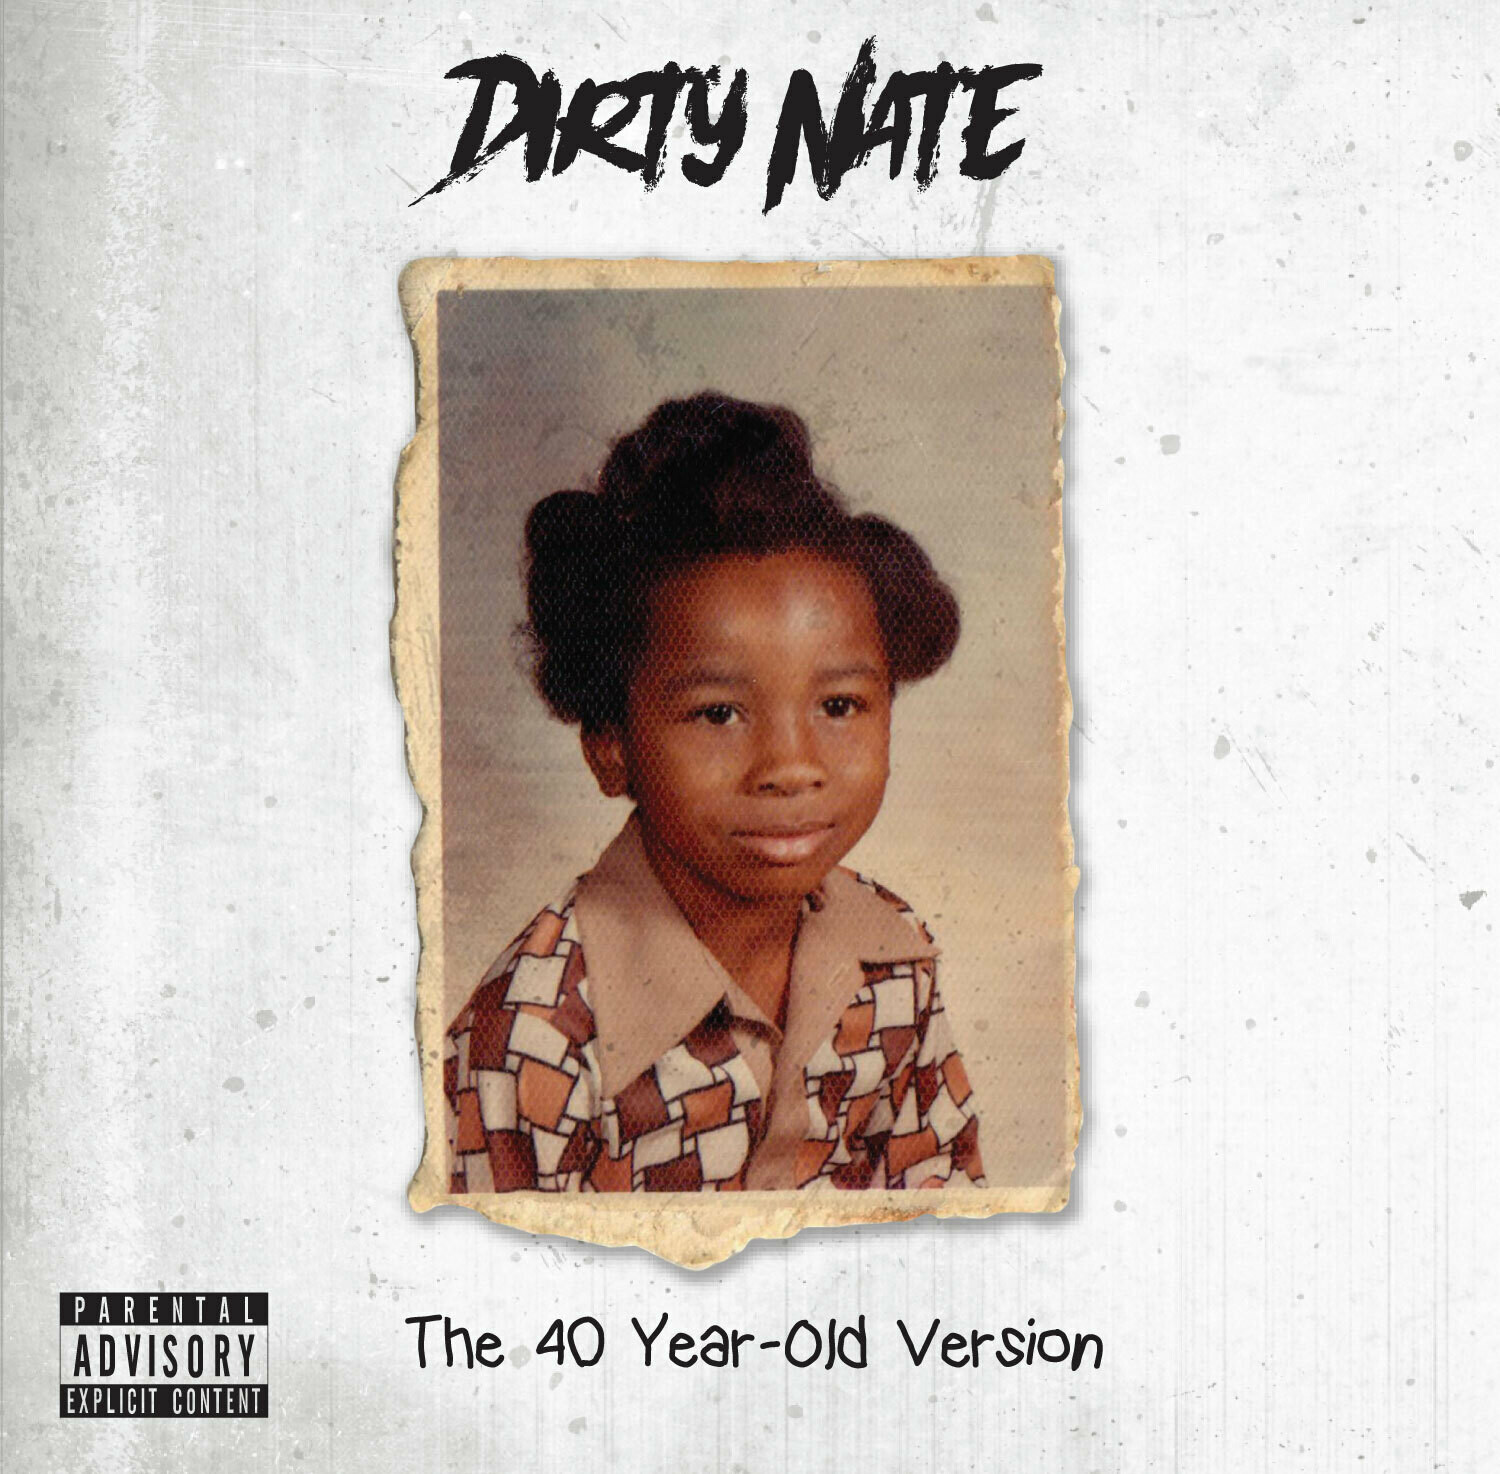 Dirty Nate - The 40 Year Old Version (Deluxe Version)